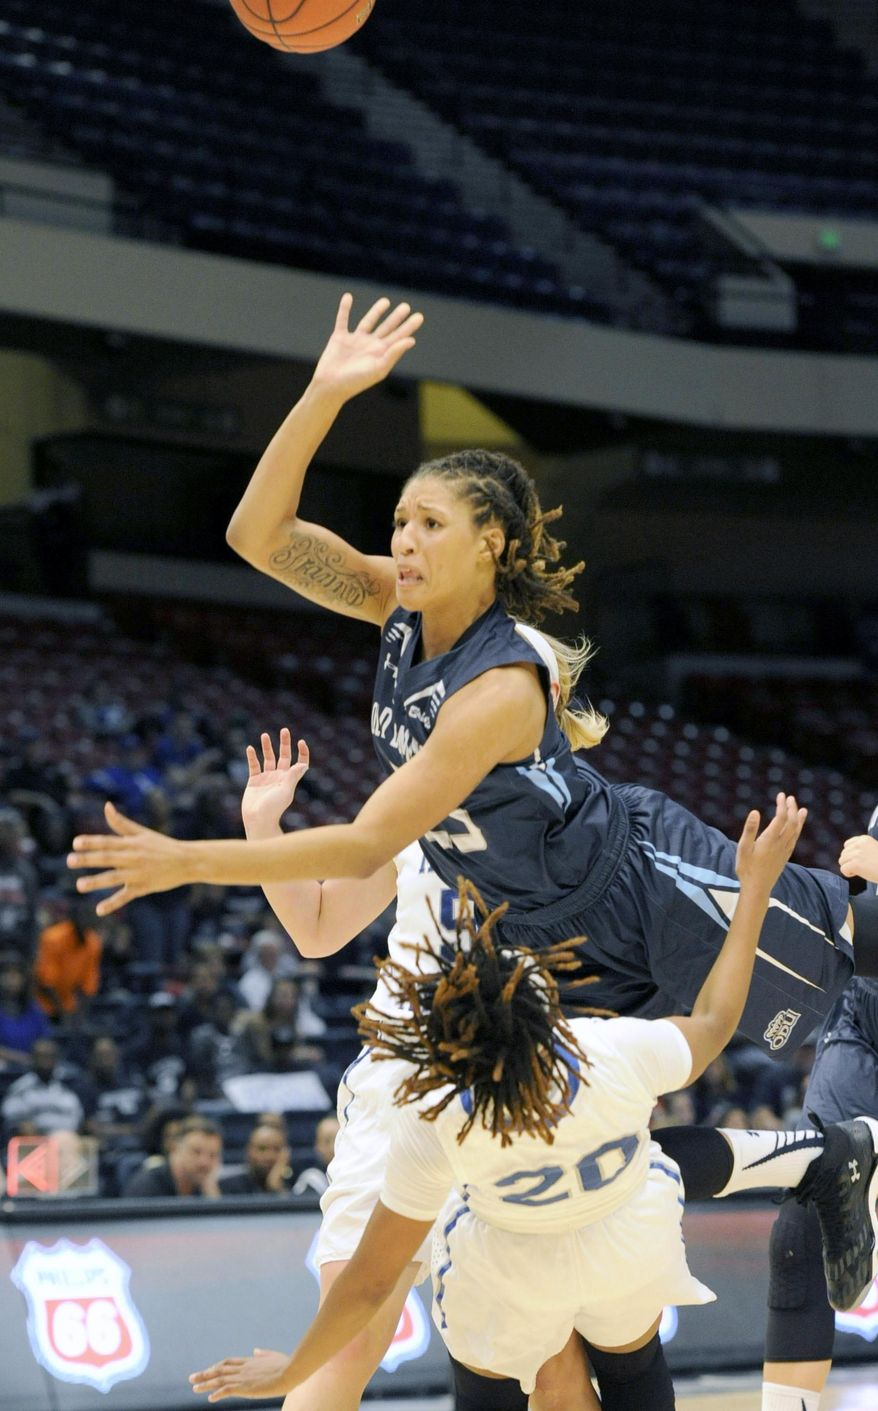 Old Dominion's Jennie Simms (25) jumps over Middle Tennessee's Ty Petty (20) during the first half of the NCAA women's college basketball game in the championship of the Conference USA men's tournament Saturday, March 12, 2016, in Birmingham, Ala. (AP Photo/Eric Schultz)